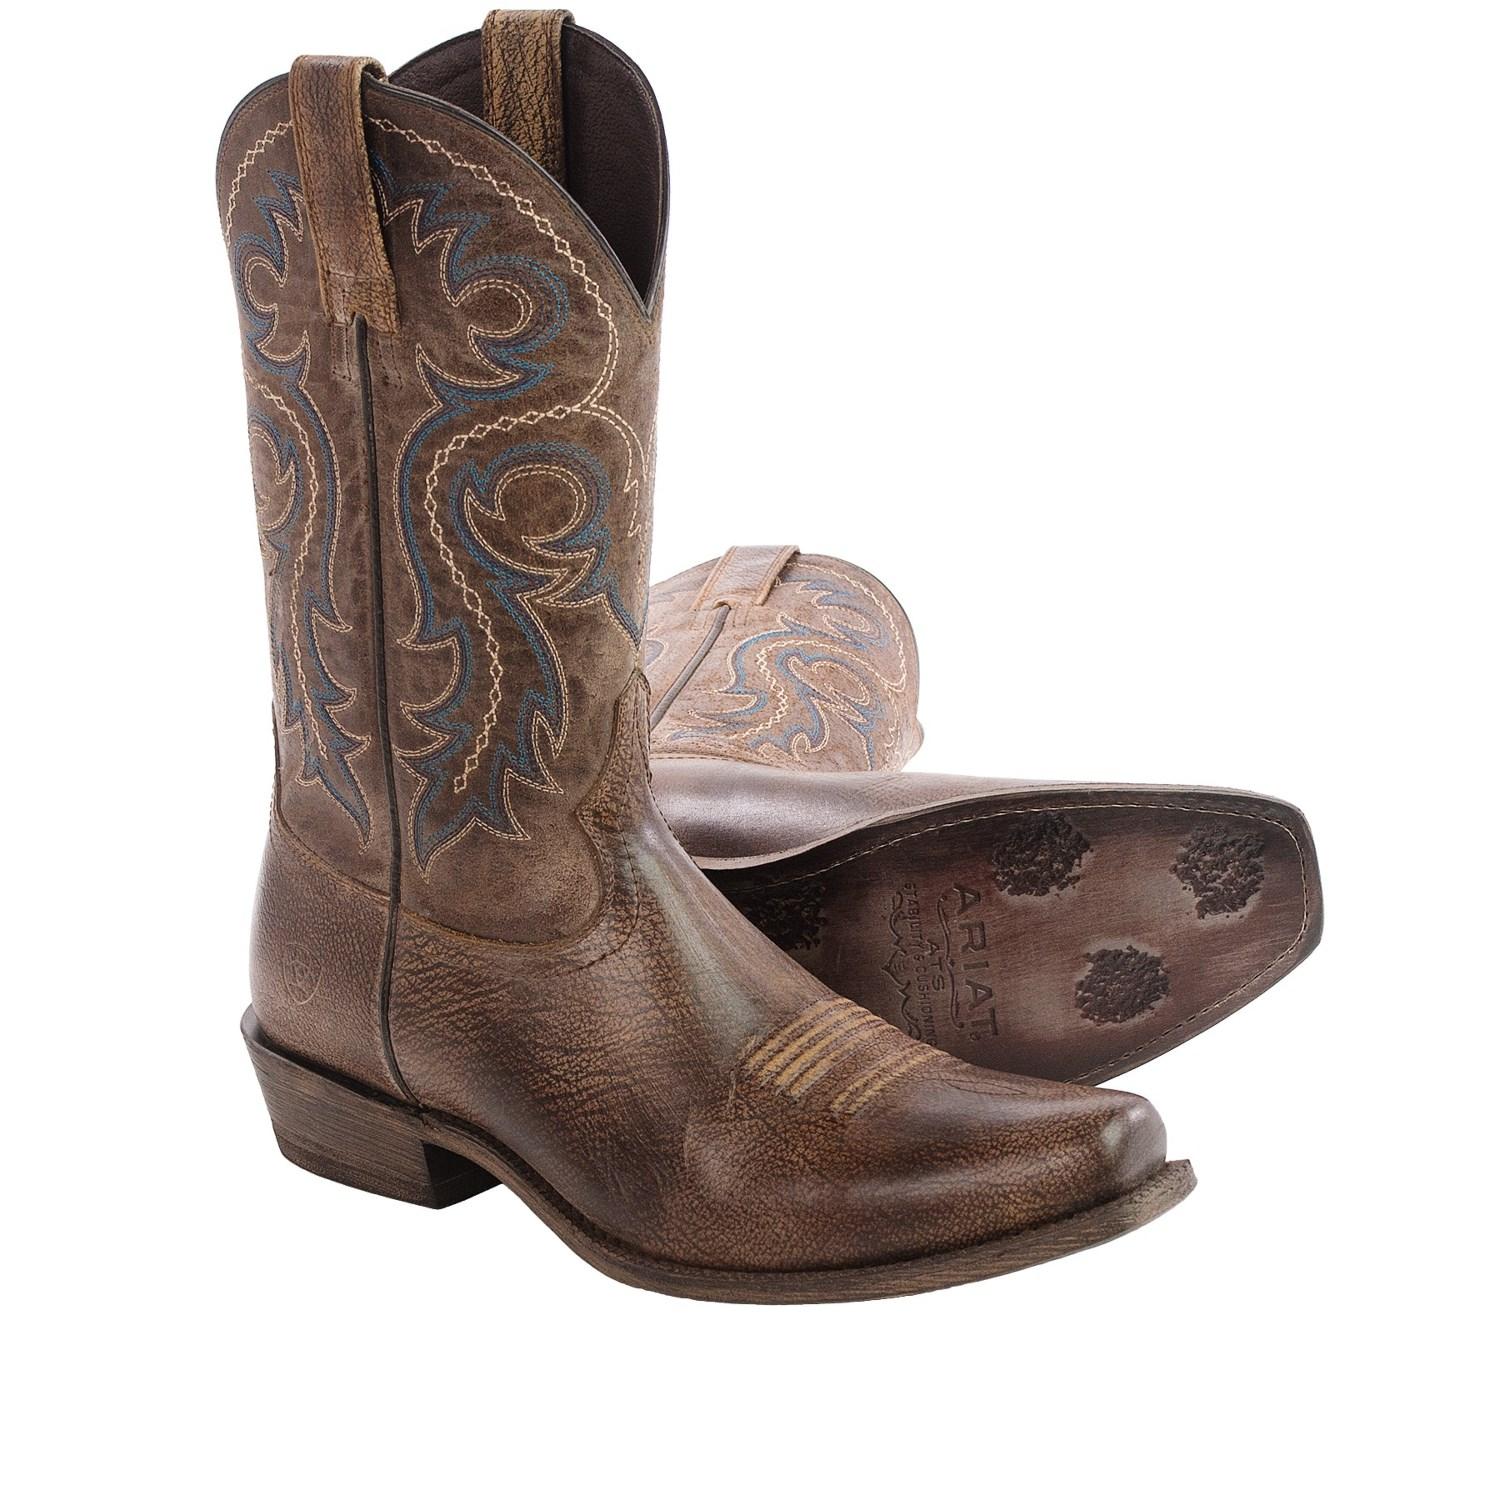 Ariat Cowboy Boots Reviews - Boot Hto